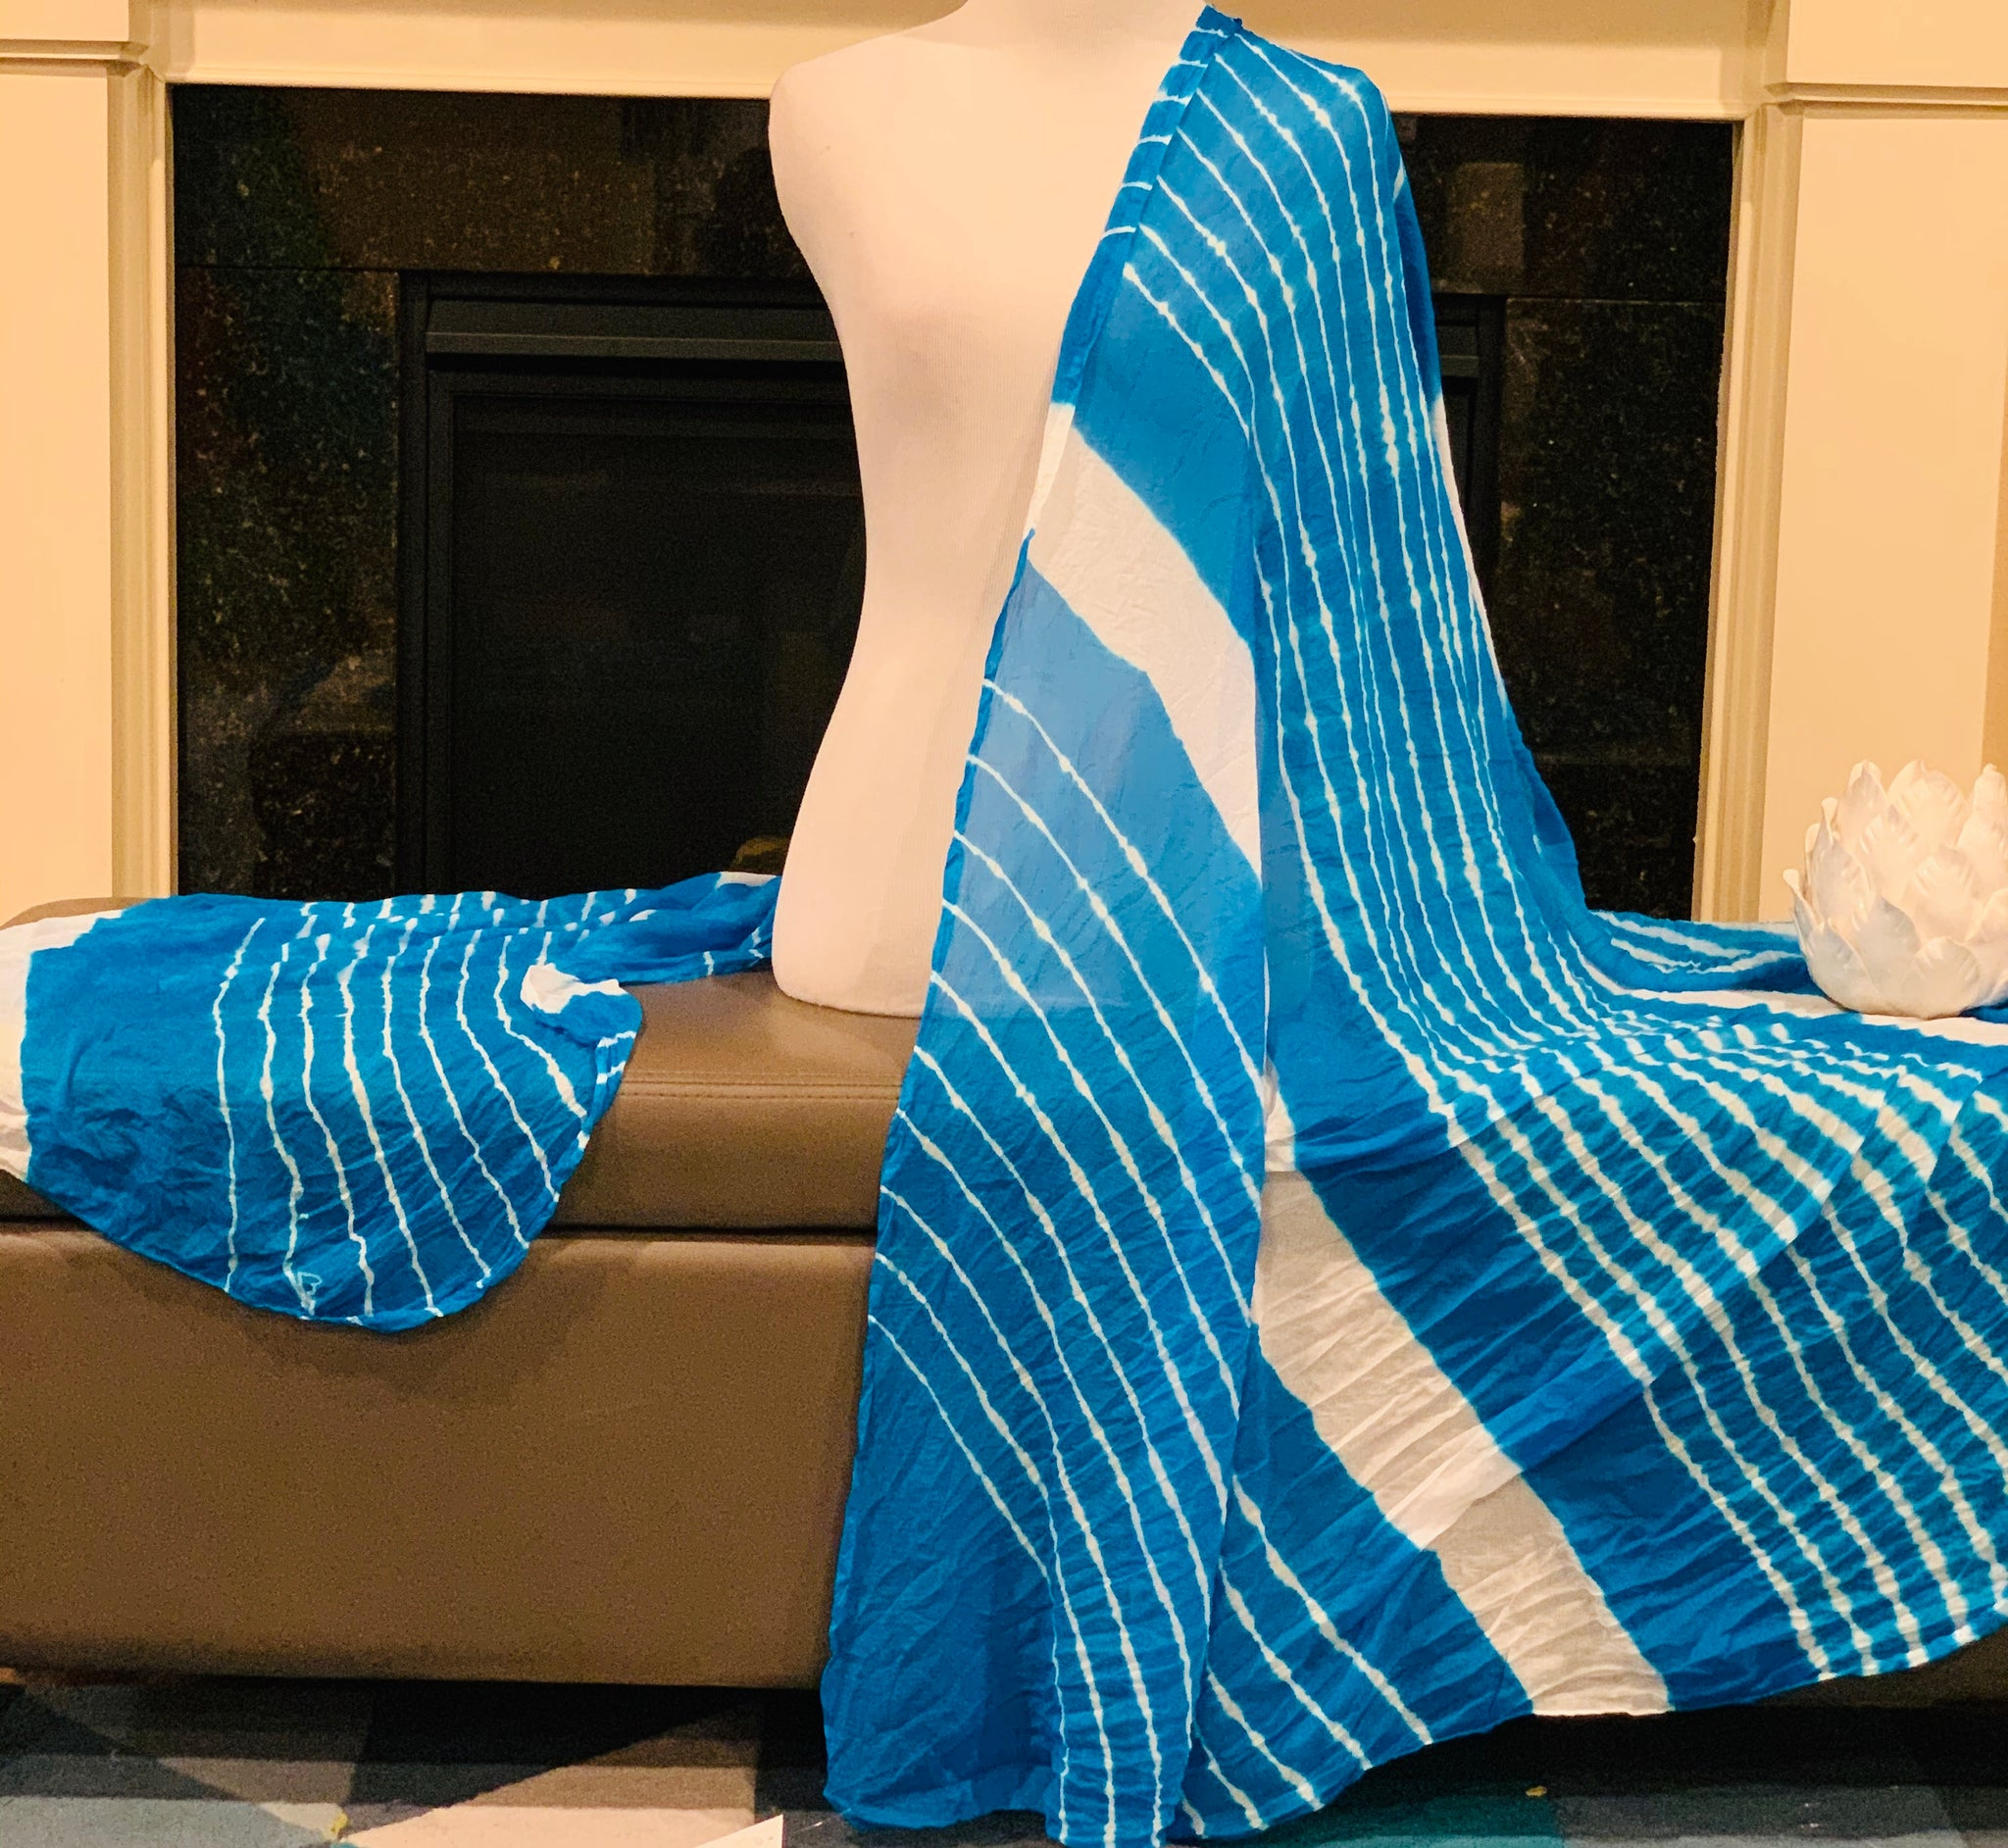 Blue and White Dupatta/Scarf